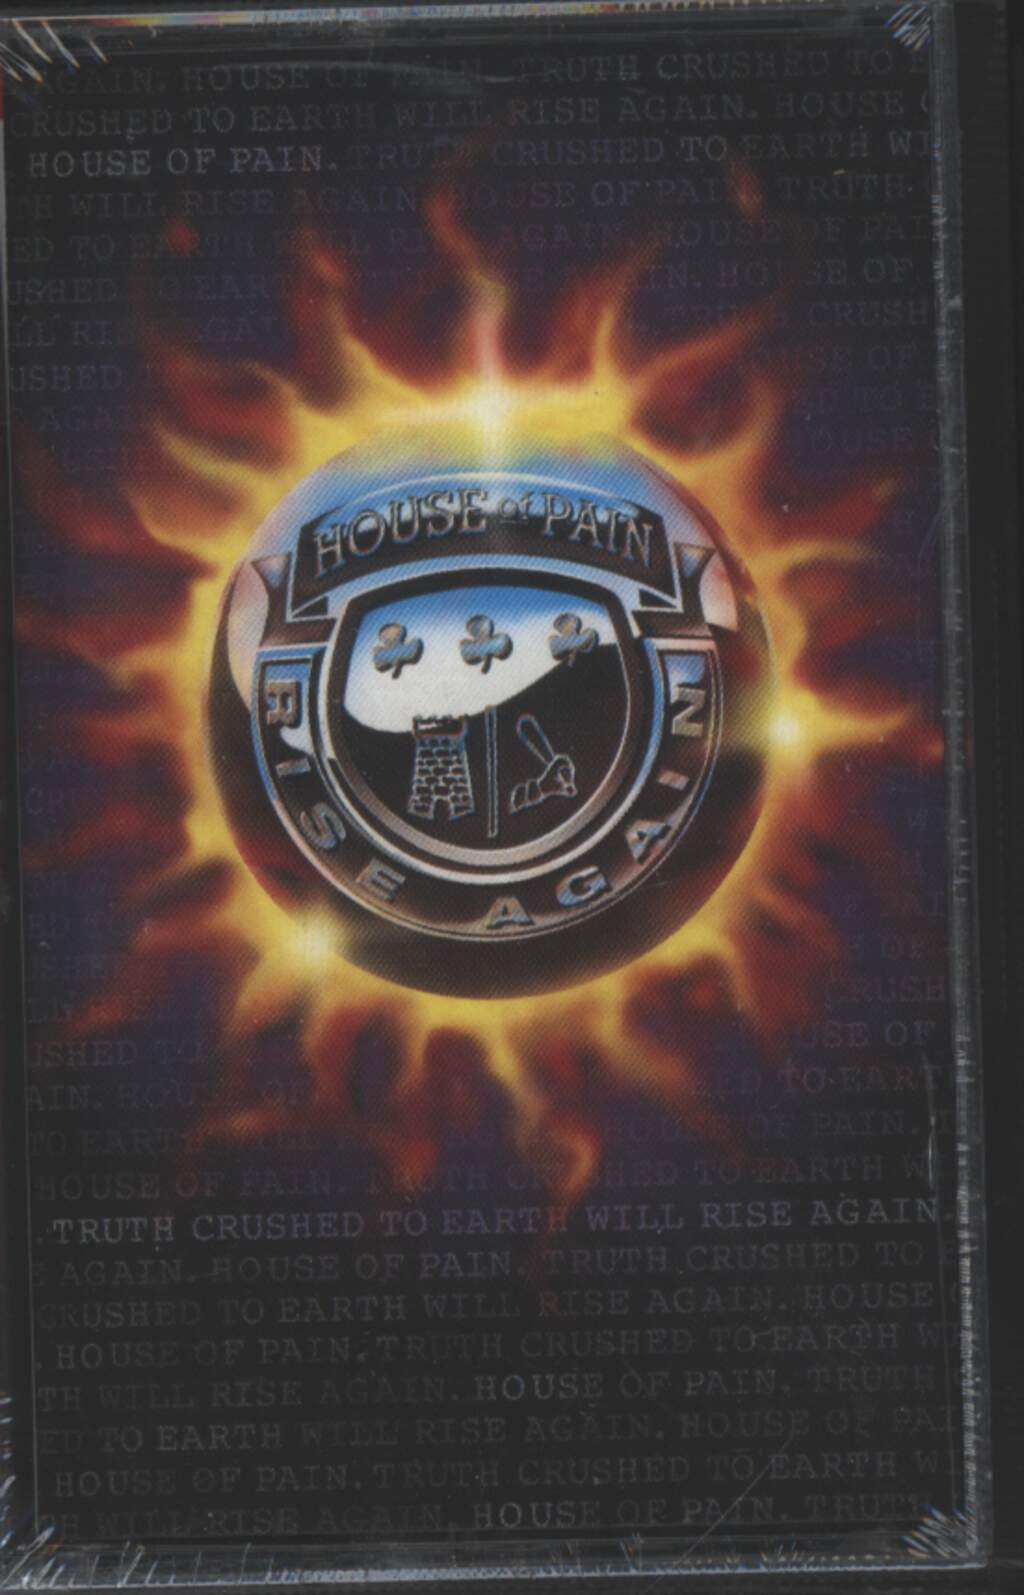 House Of Pain: Truth Crushed To Earth Shall Rise Again, Tape